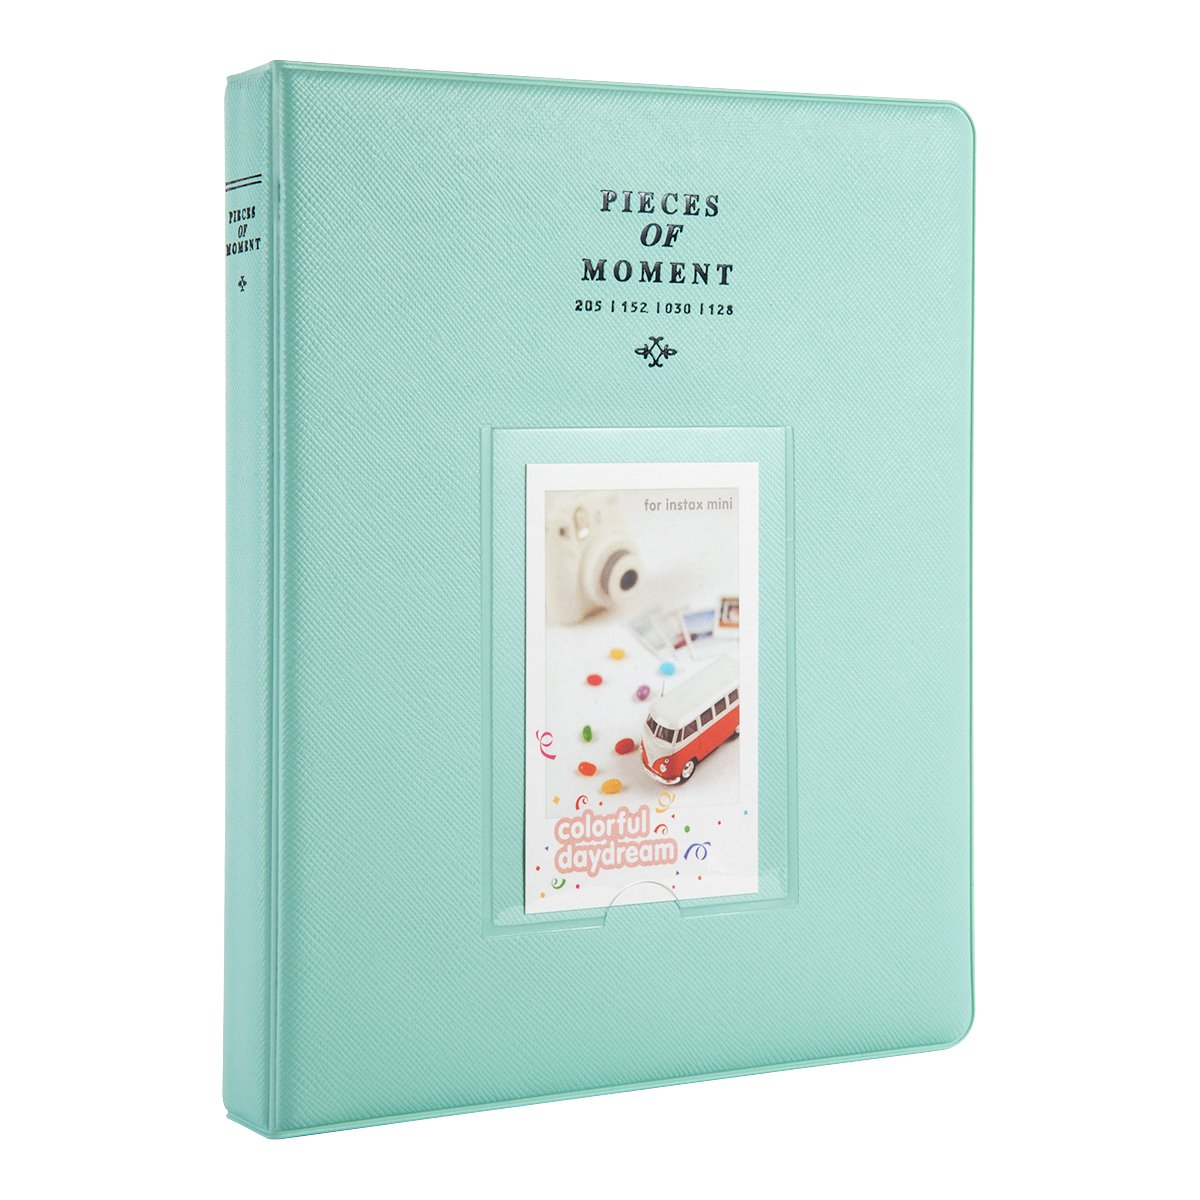 CAIUL Compatible 128 Pockets Mini Photo Album for Fujifilm Instax Mini 7s 8 8+ 9 25 26 50s 70 90 Film, Polaroid PIC-300 Z2300 Film (Ice Blue) by CAIUL